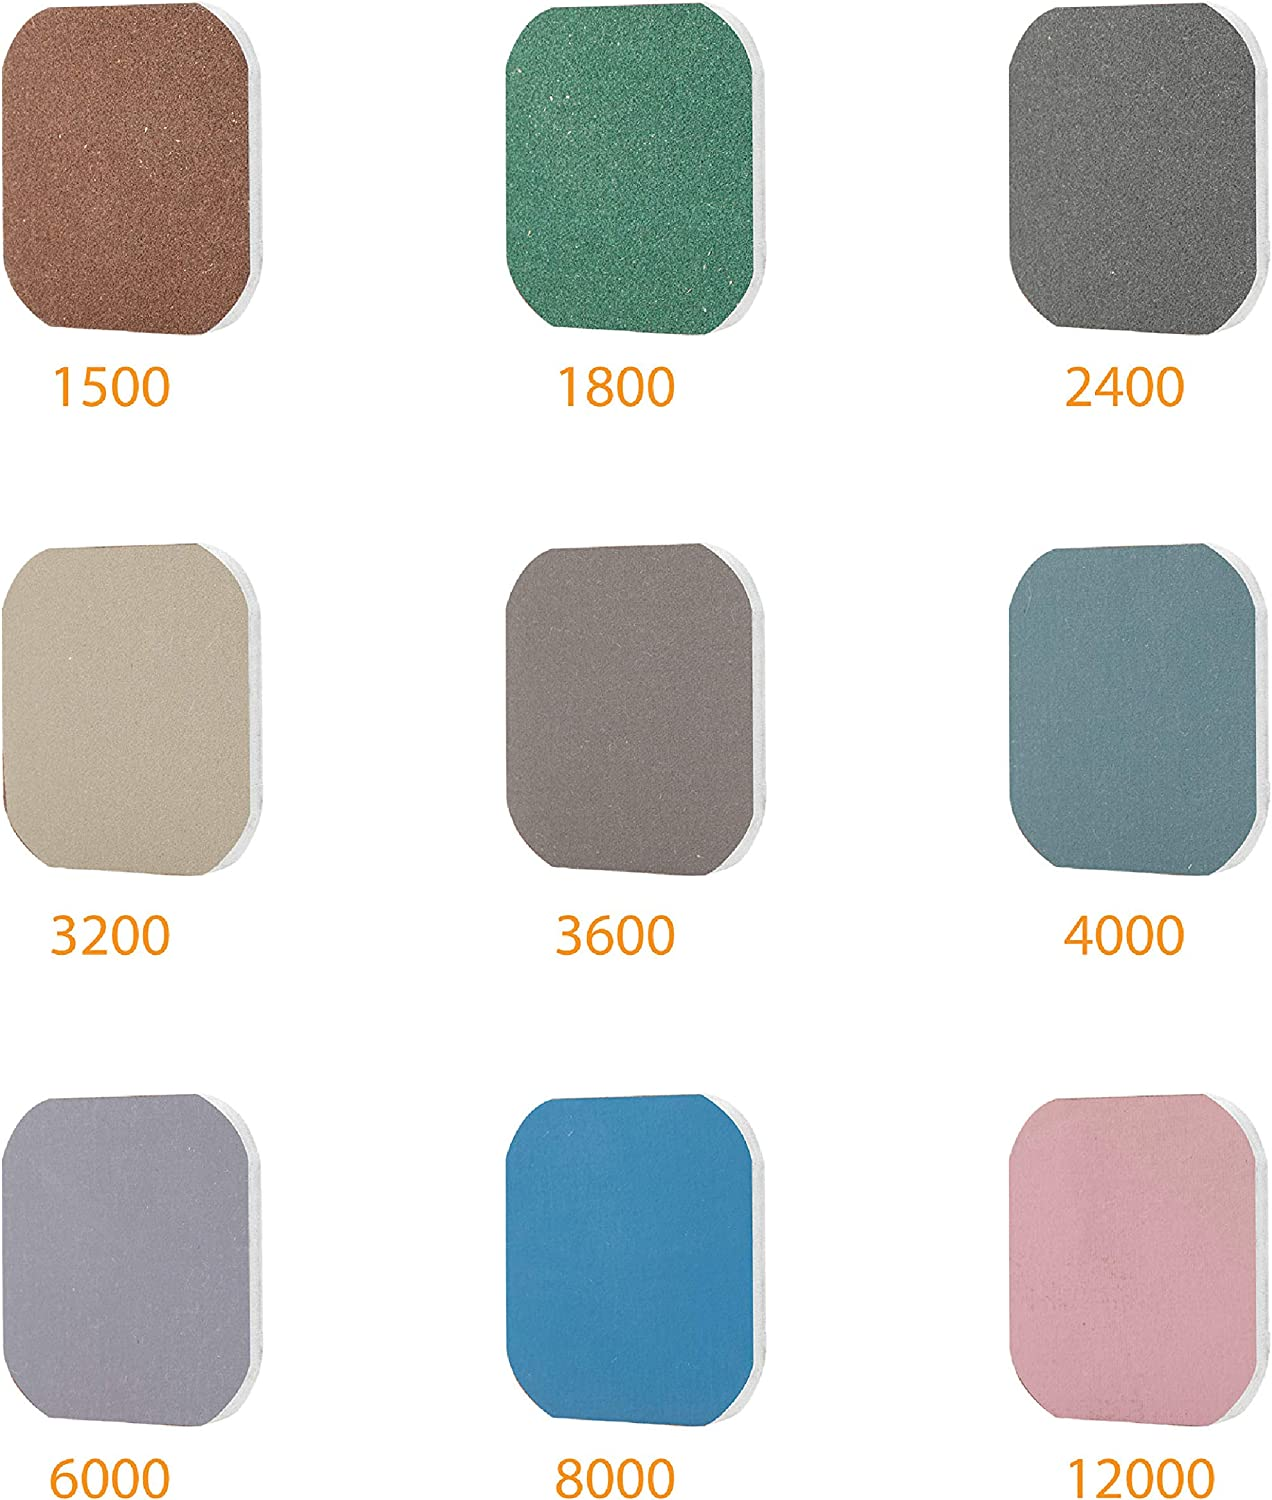 2400 8000 6000 Wet and Dry cloth sandpaper grades 1500 12000 Finest 4000